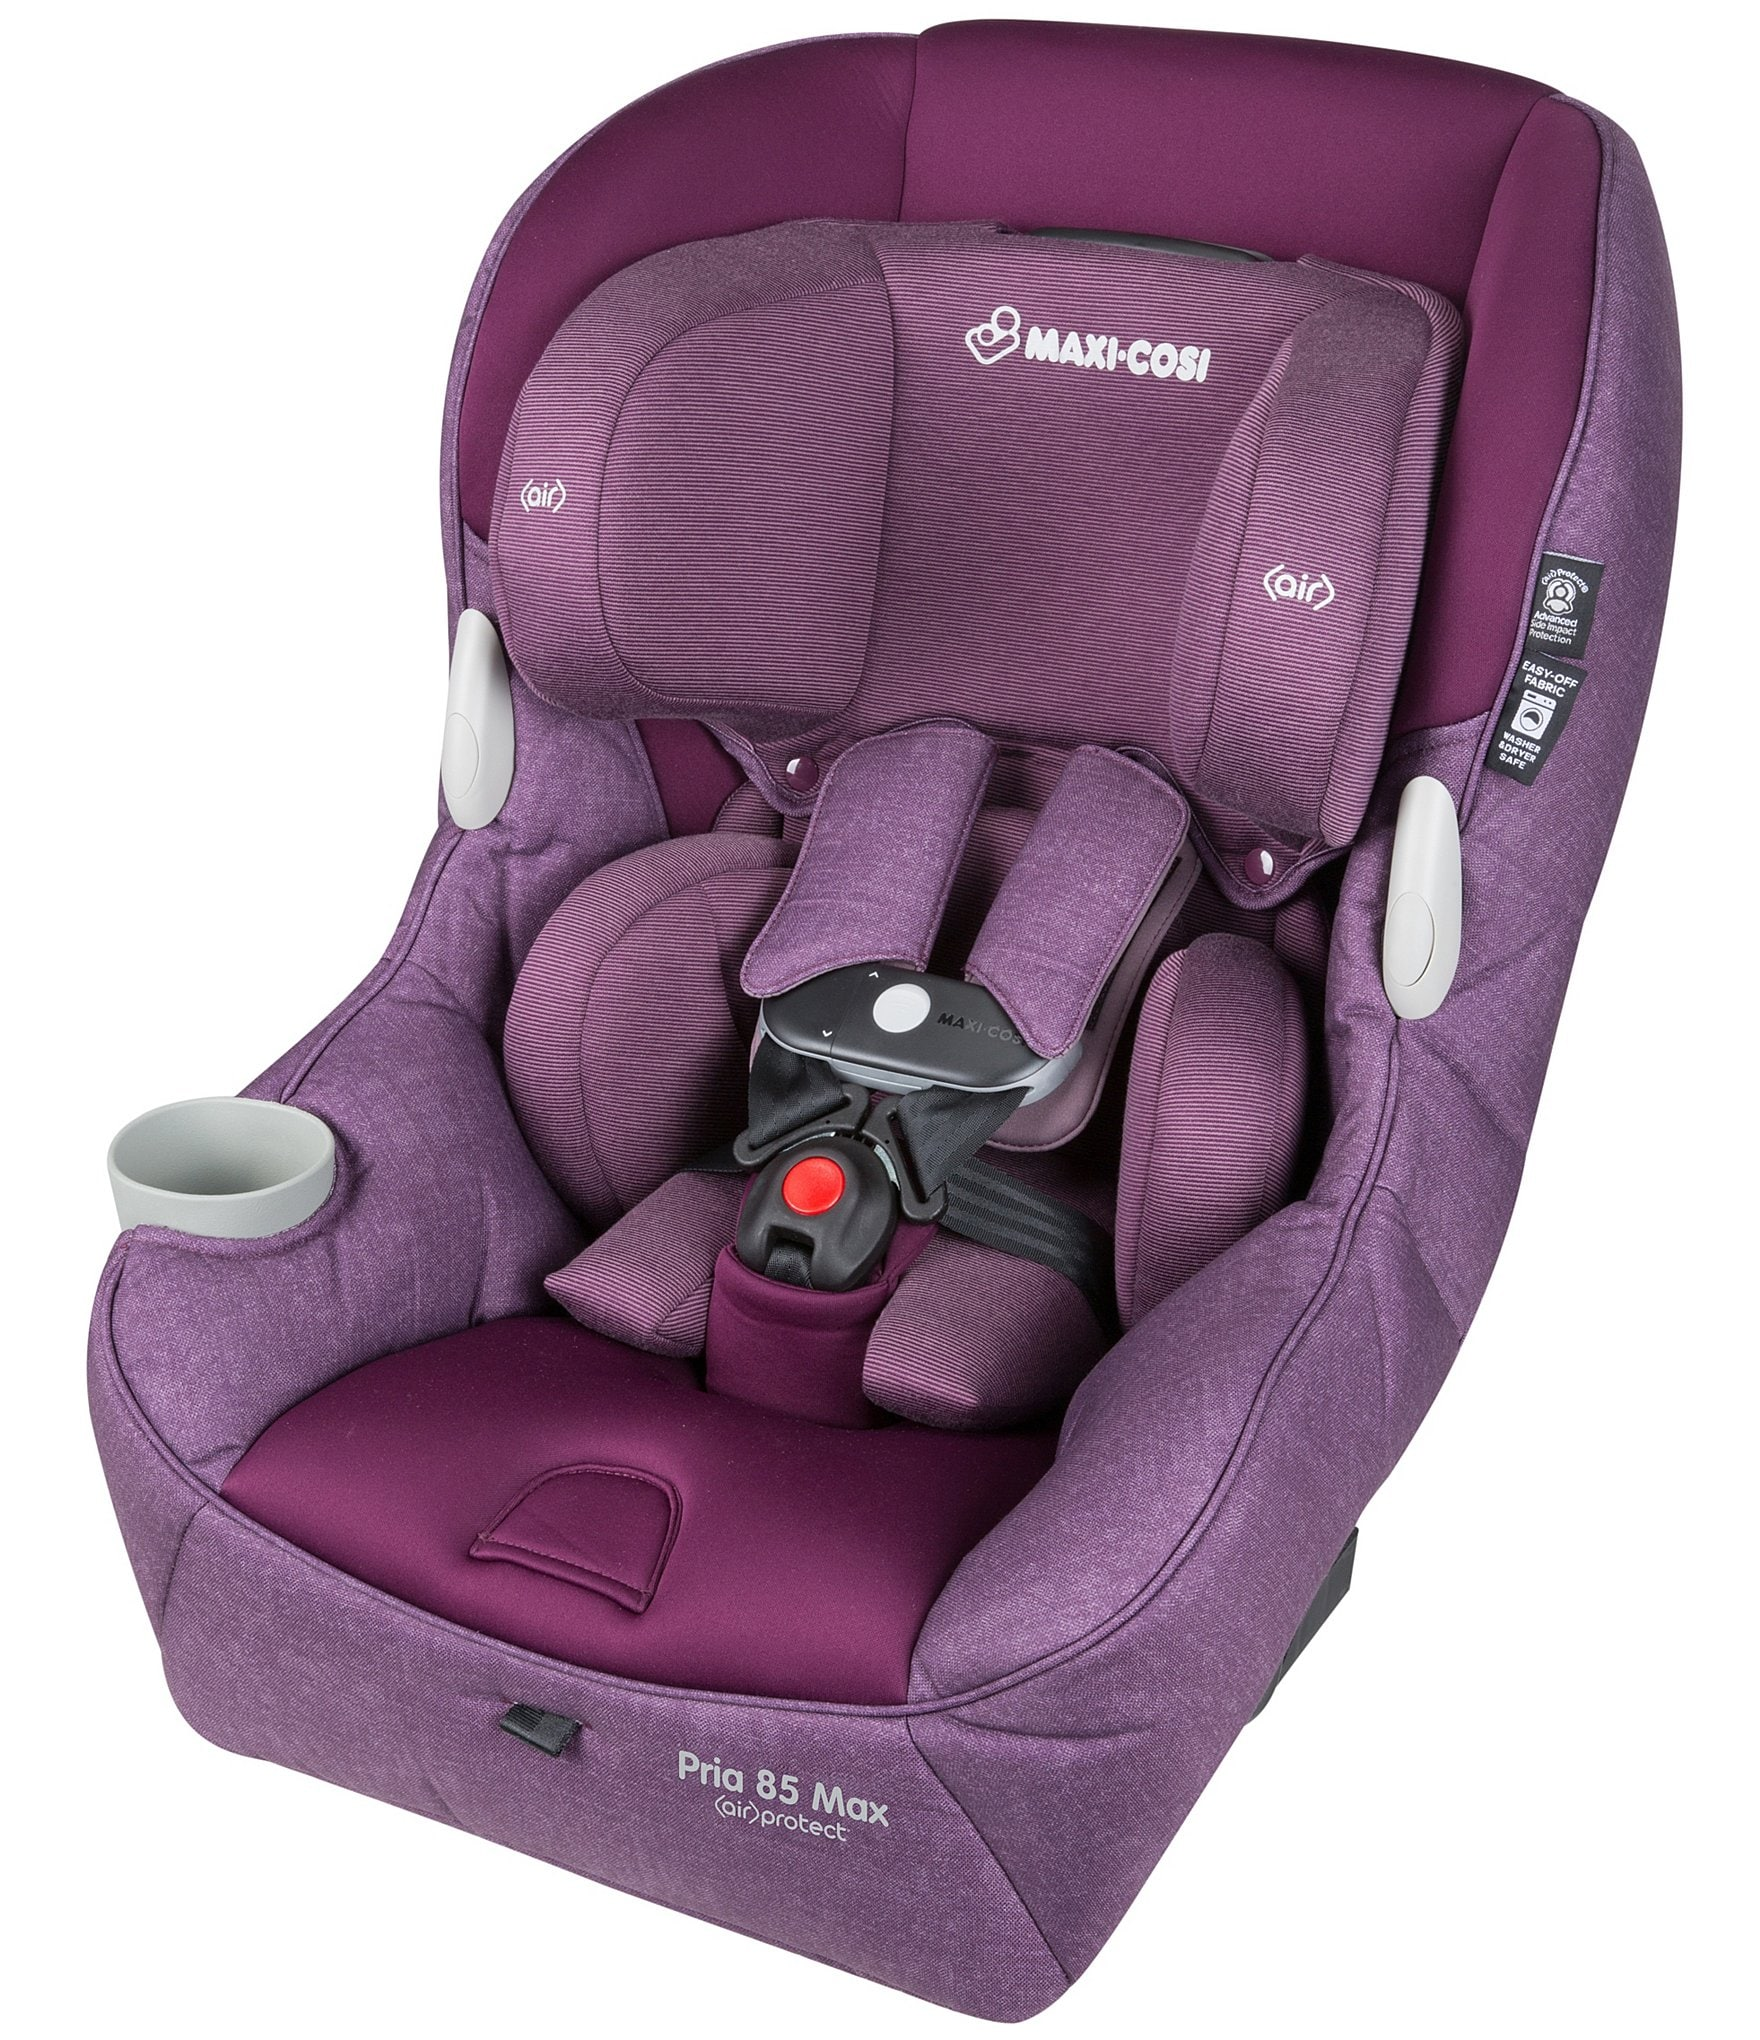 Baby Capsule Convertible Car Seat Maxi Cosi Pria Max Nomad Collection Convertible Car Seat Dillard S